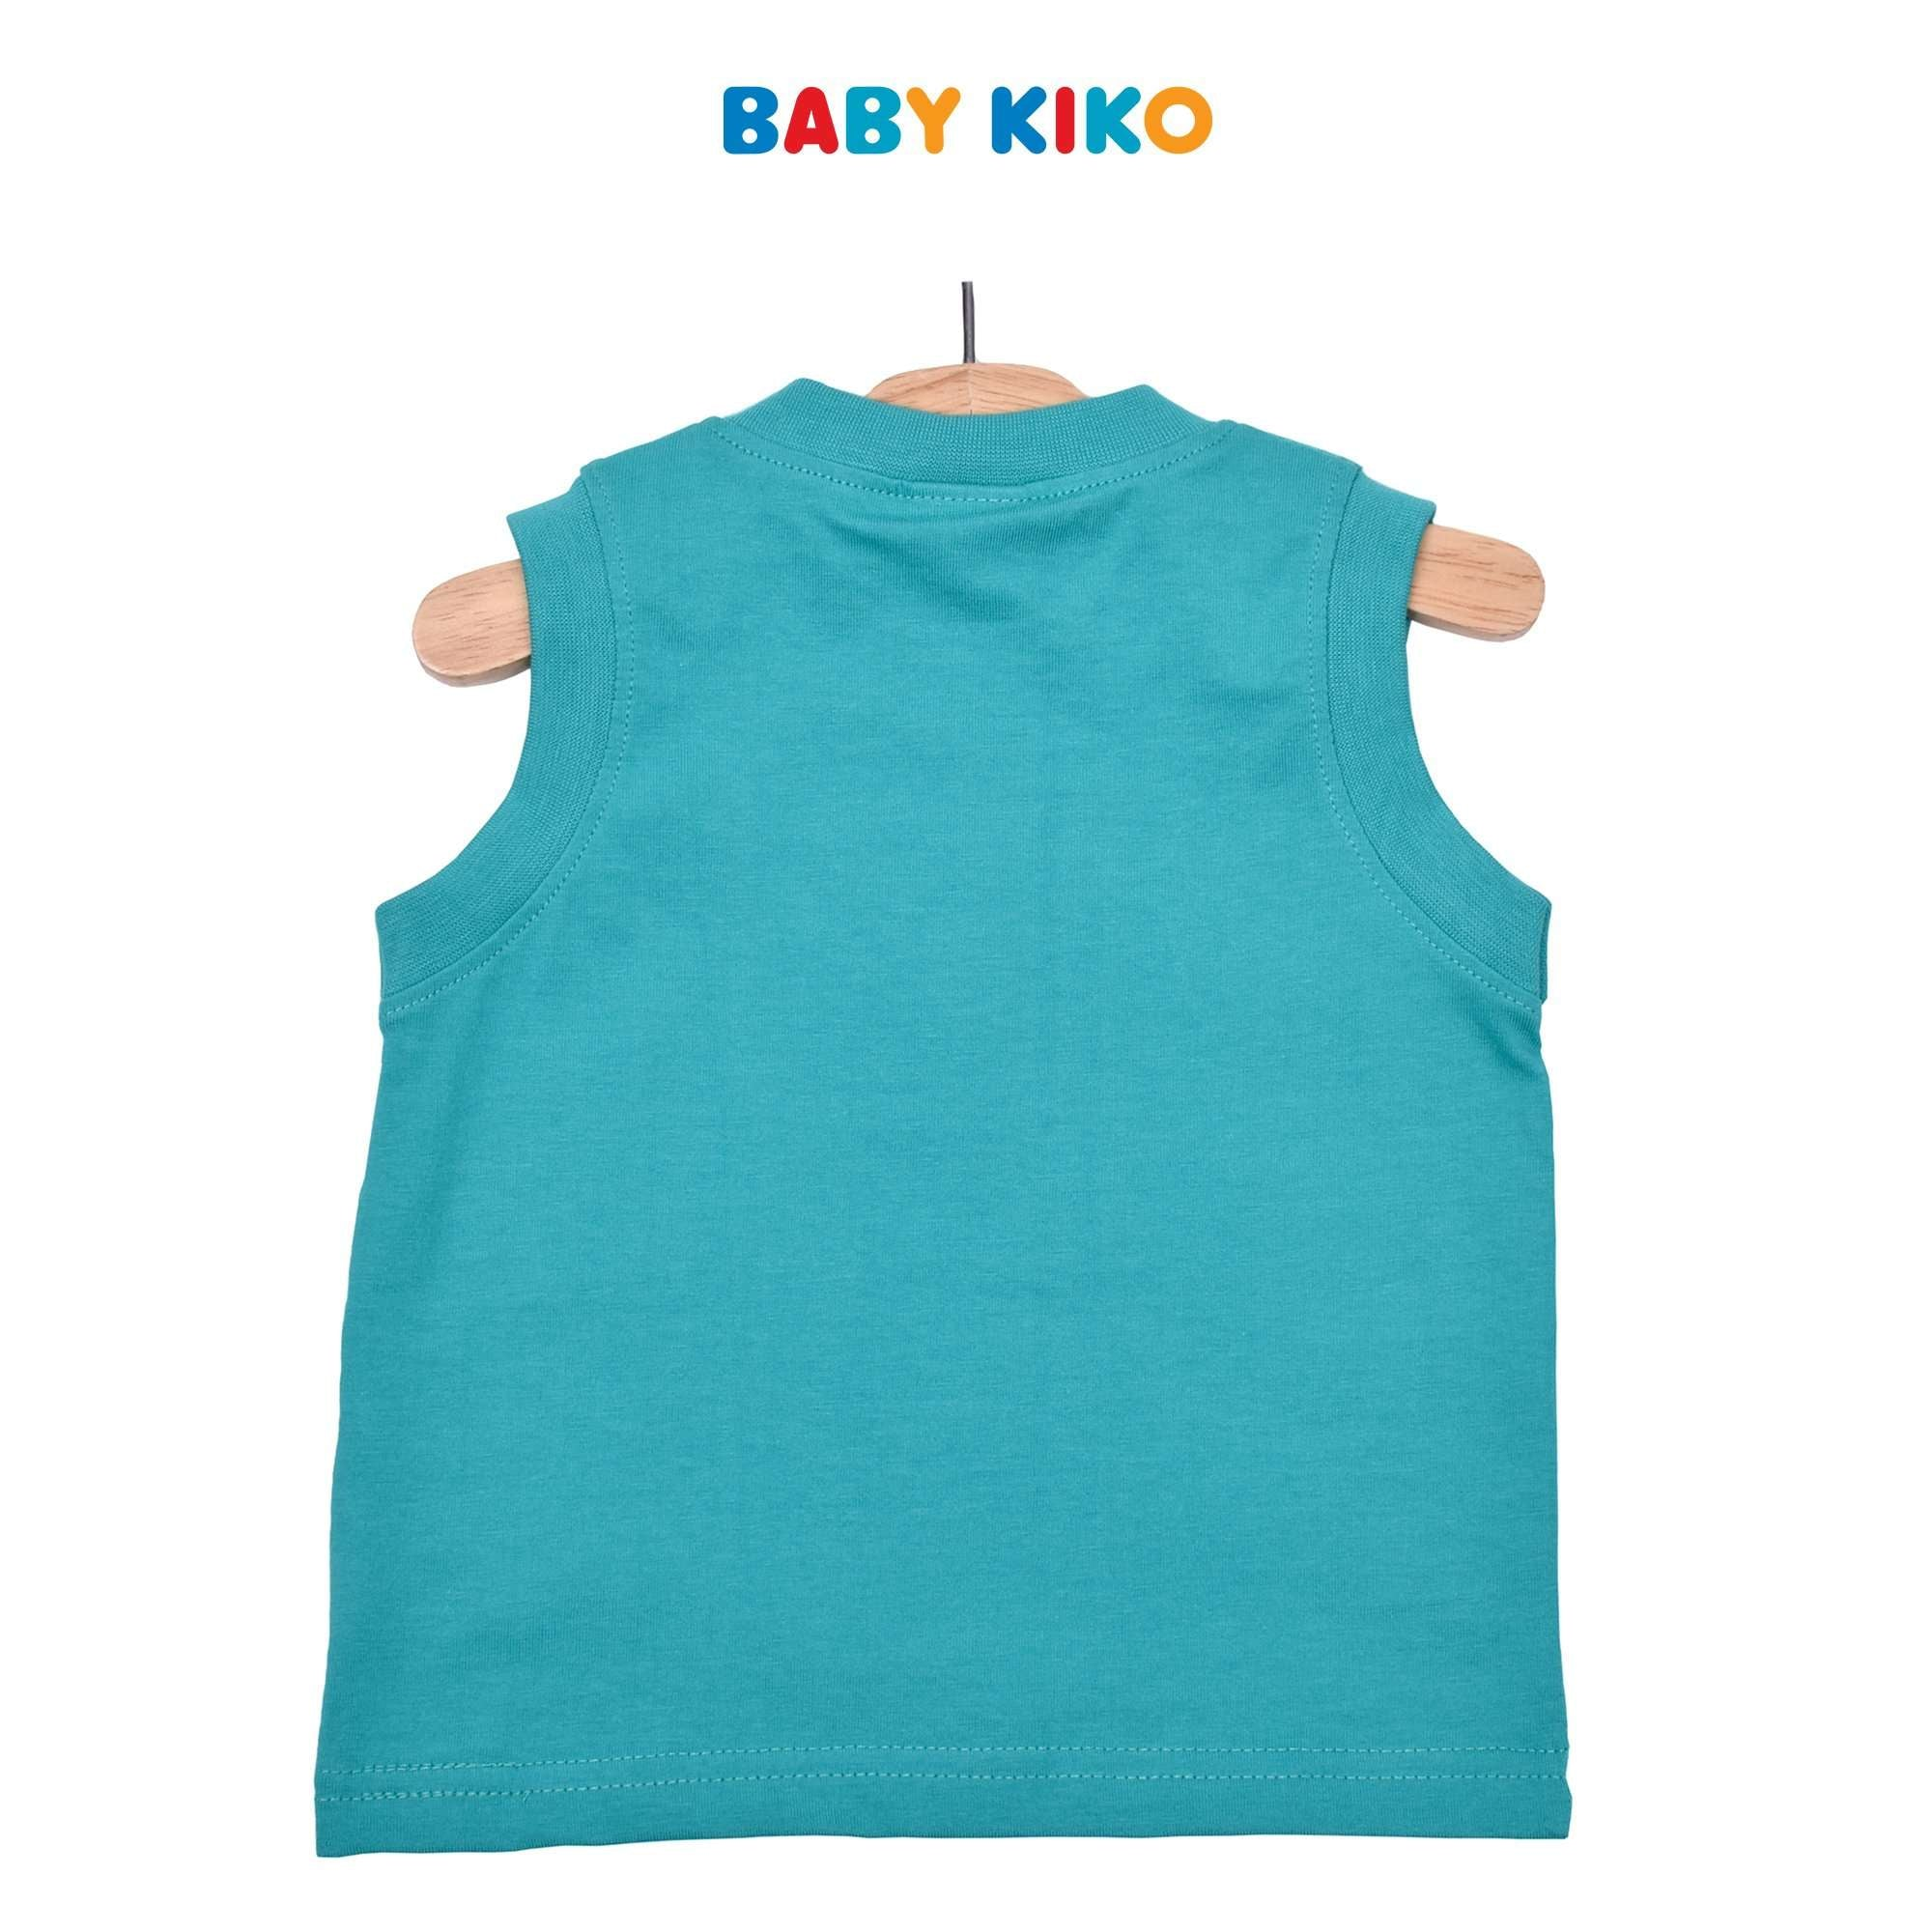 Baby KIKO Baby Boy Sleeveless Tee- Green 330145-101 : Buy Baby KIKO online at CMG.MY